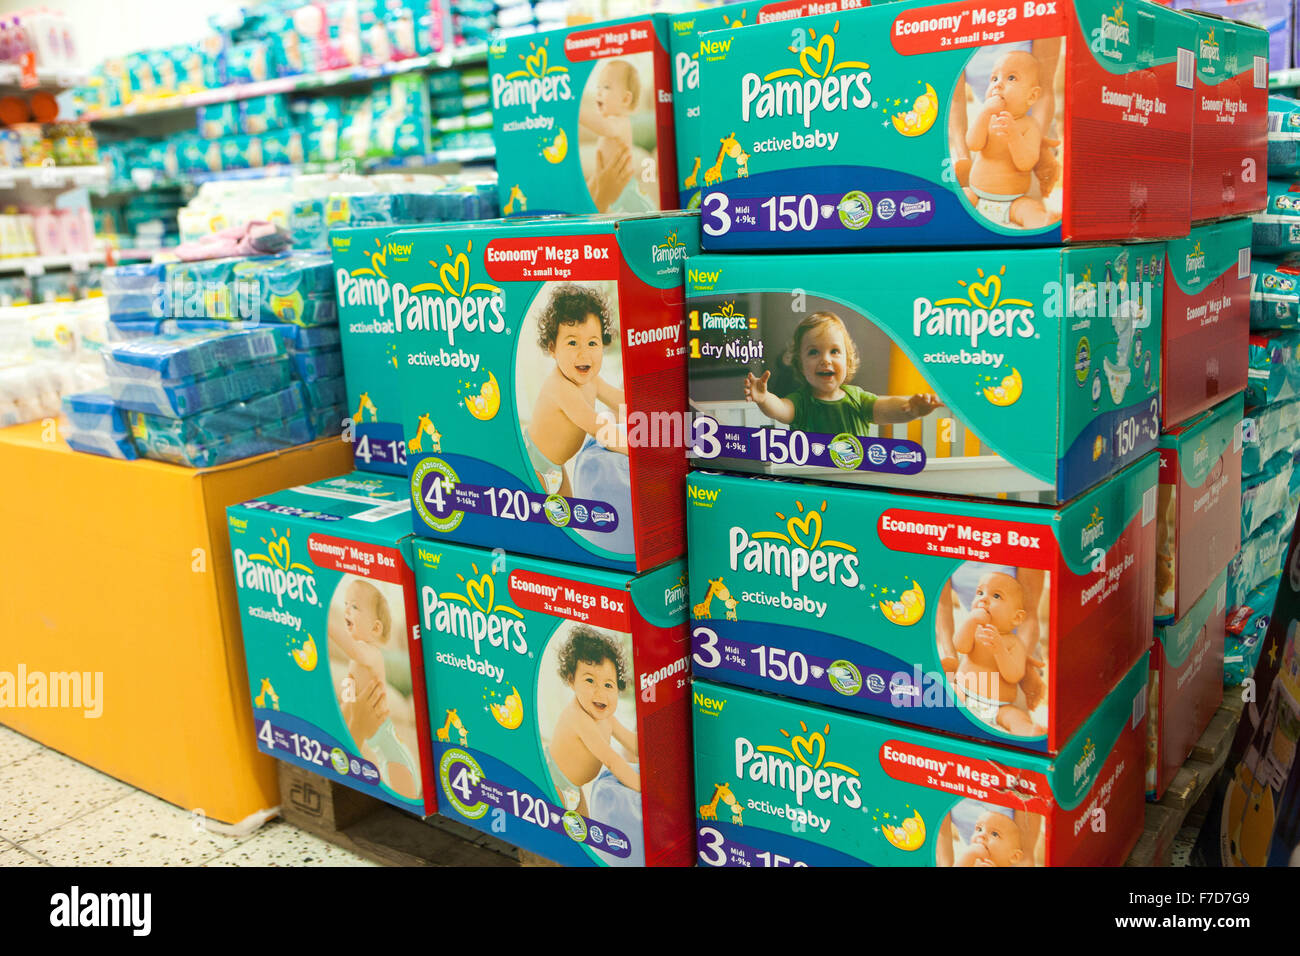 Diapers Box Stock Photos & Diapers Box Stock Images - Alamy